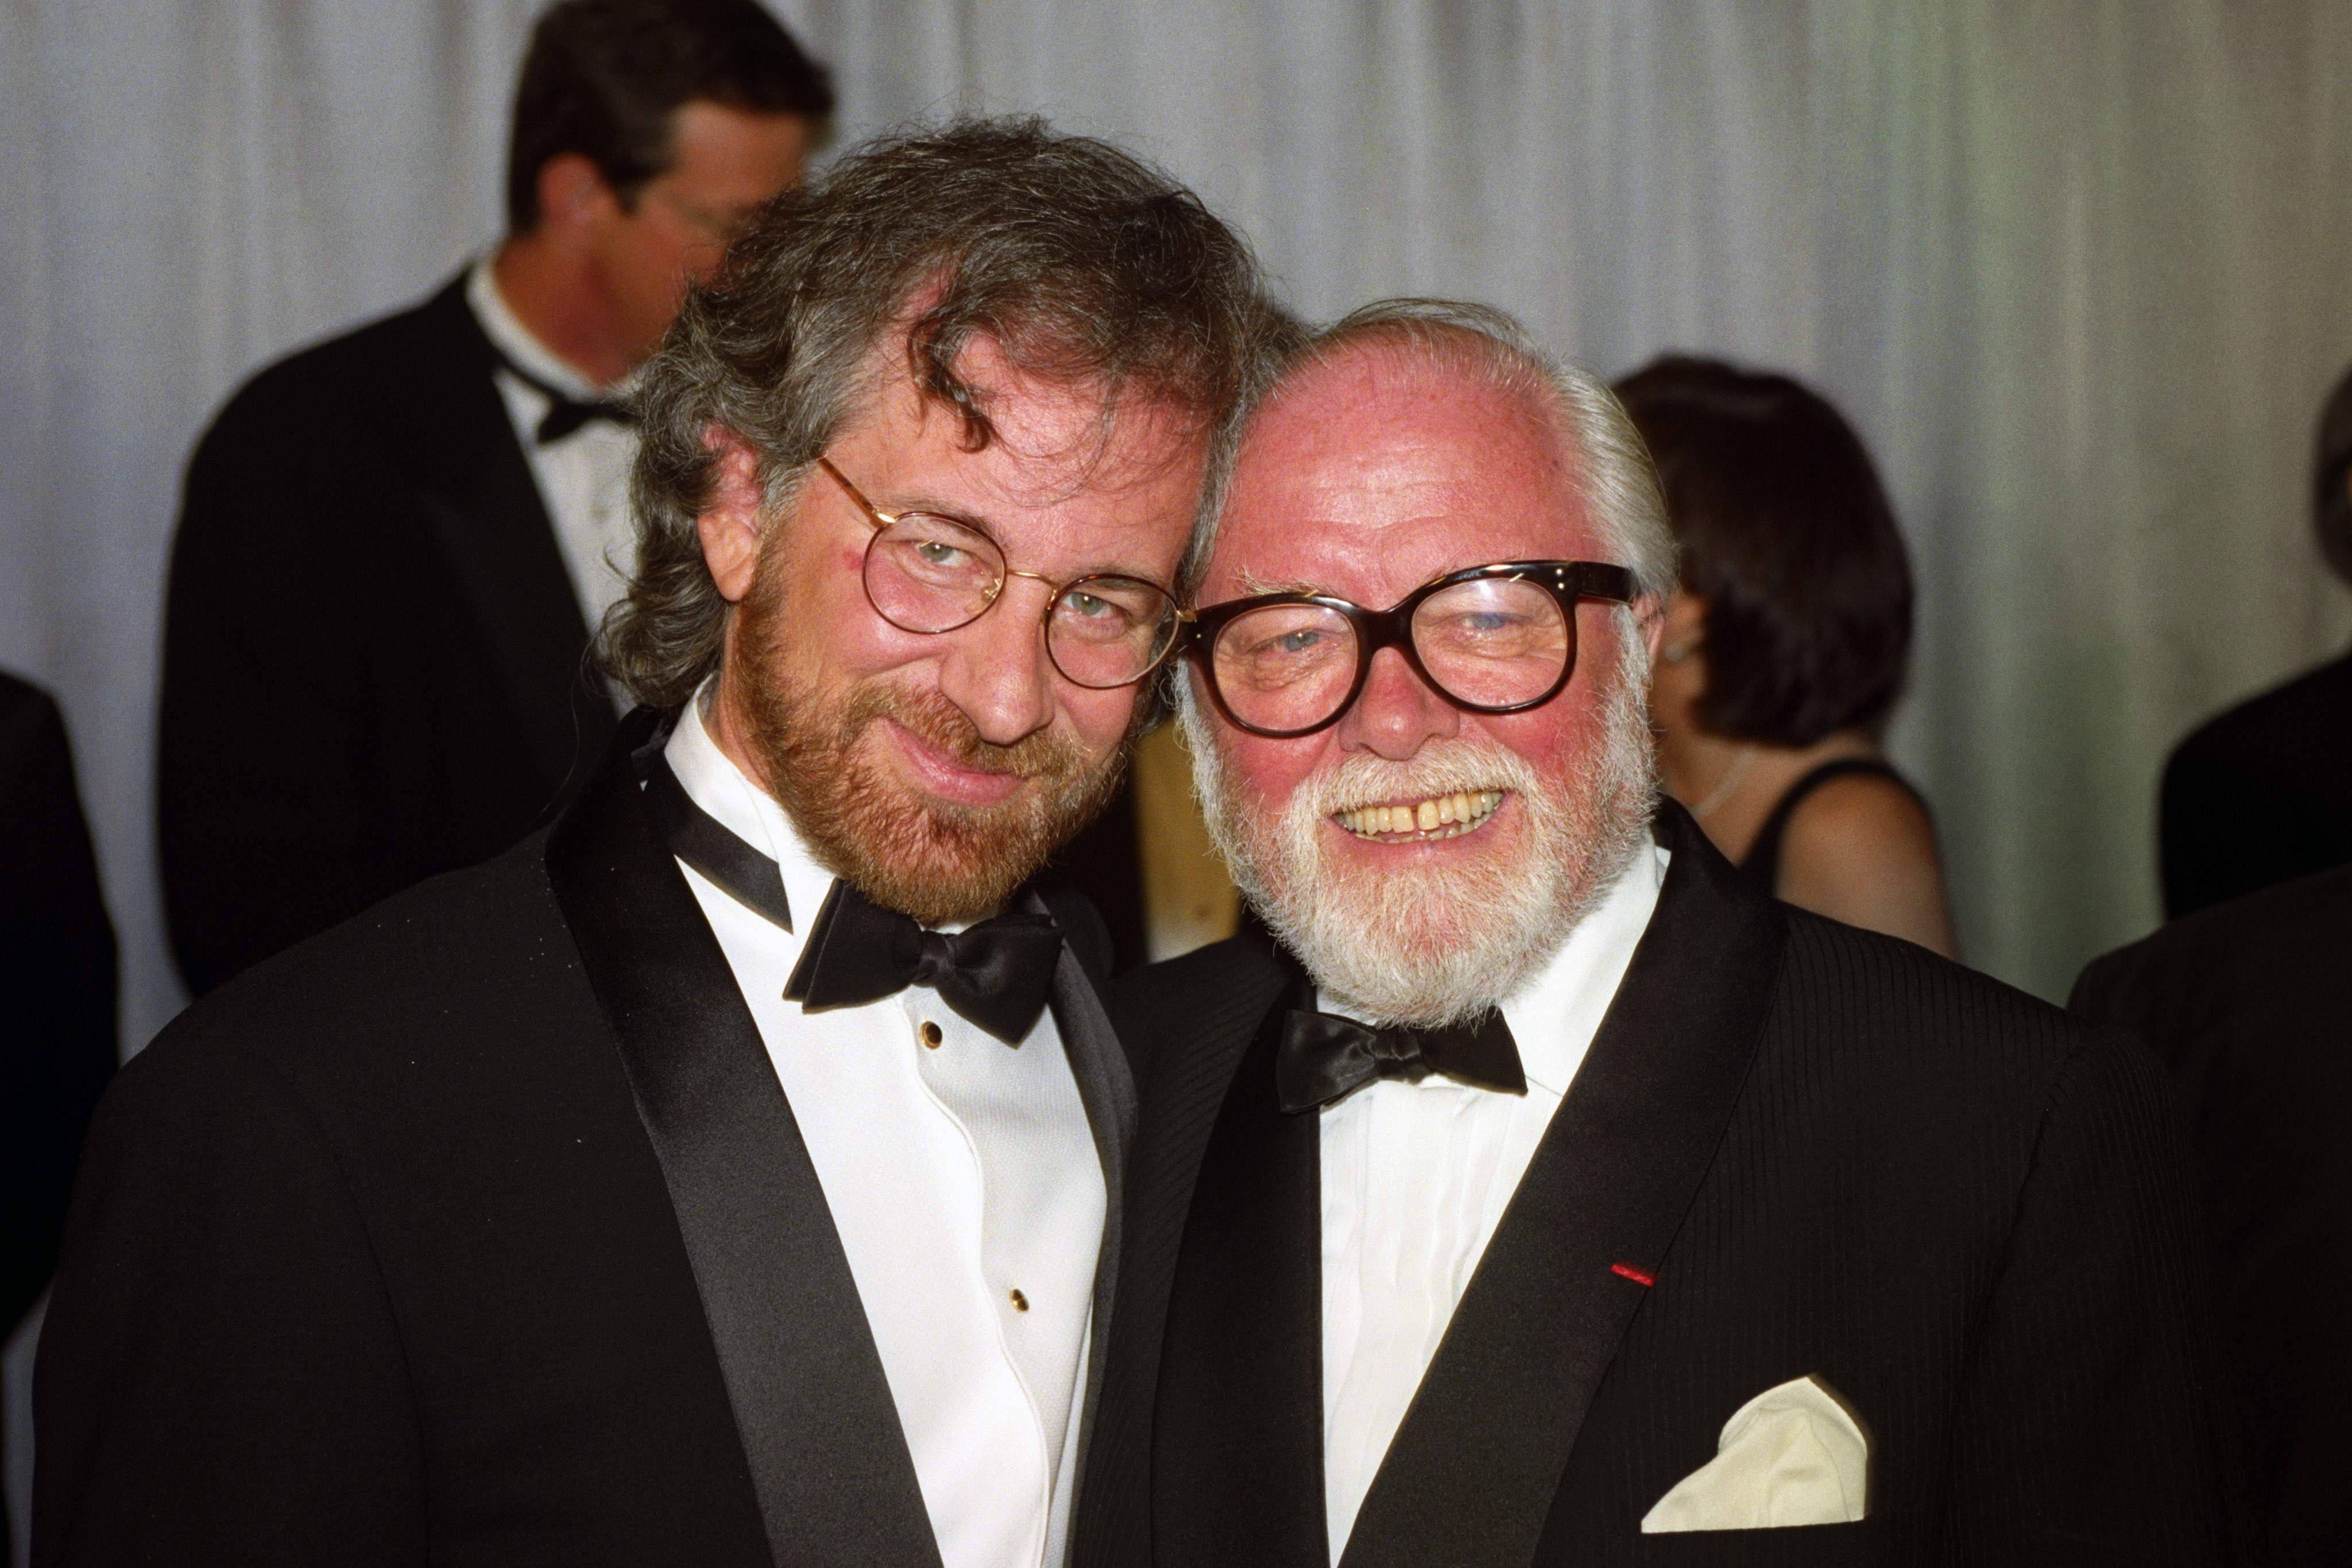 Steven Spielberg and Richard Attenborough at the Premiere for Jurassic Park, 1993.